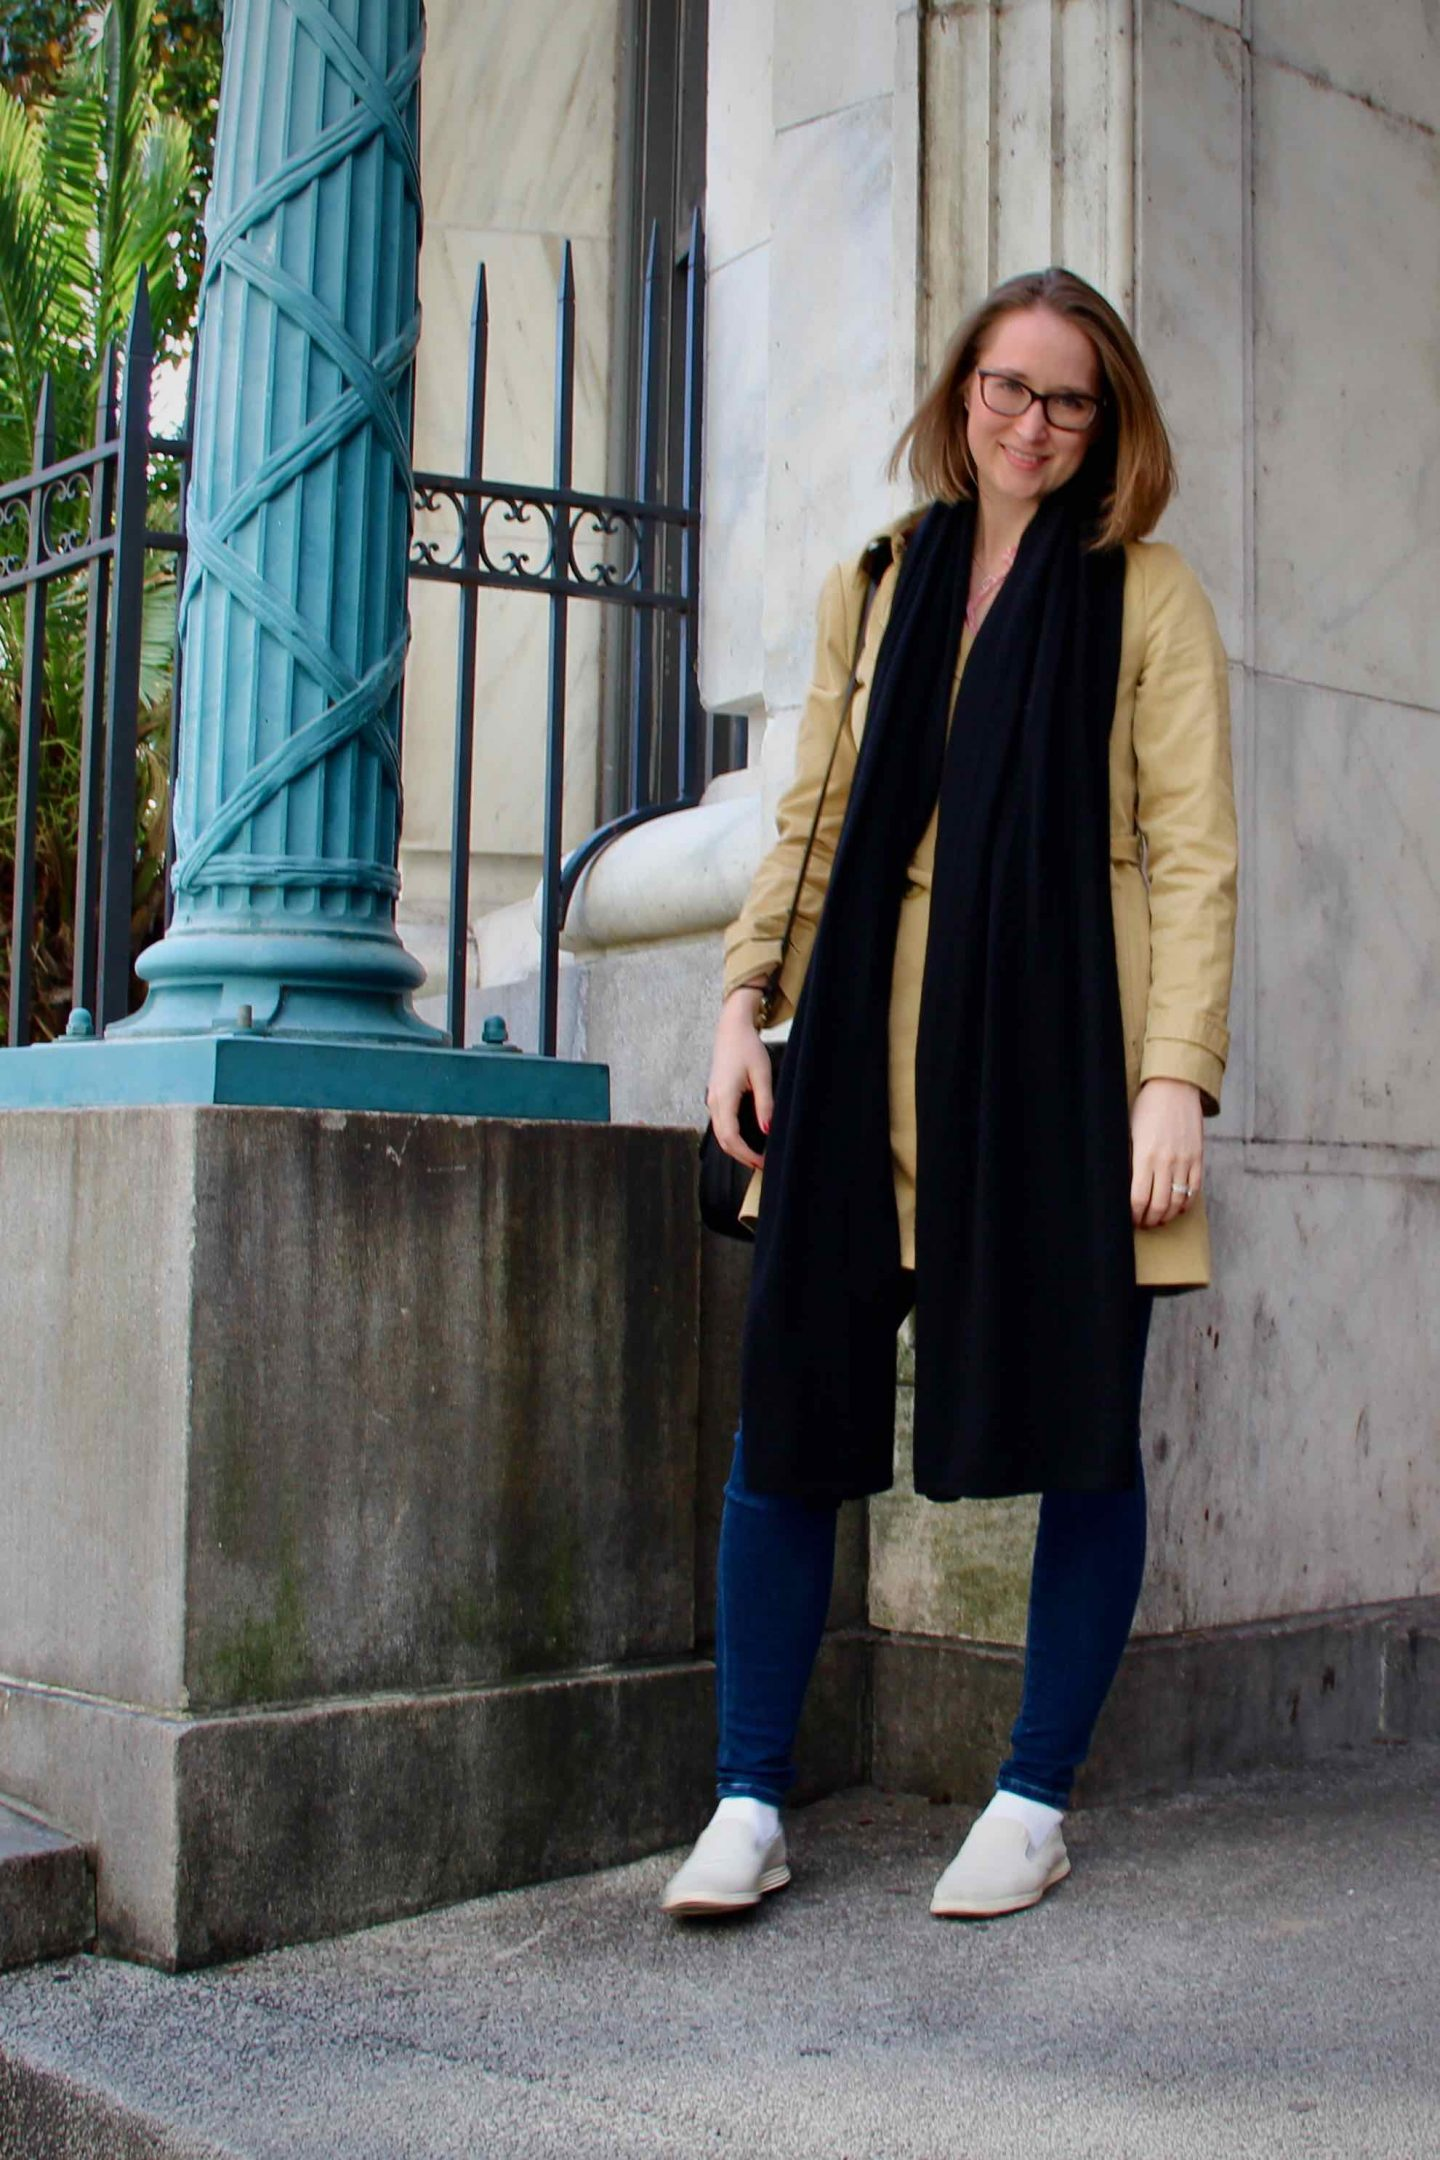 J. Crew Trench Jacket | New Orleans Packing Guide | The Spectacular Adventurer